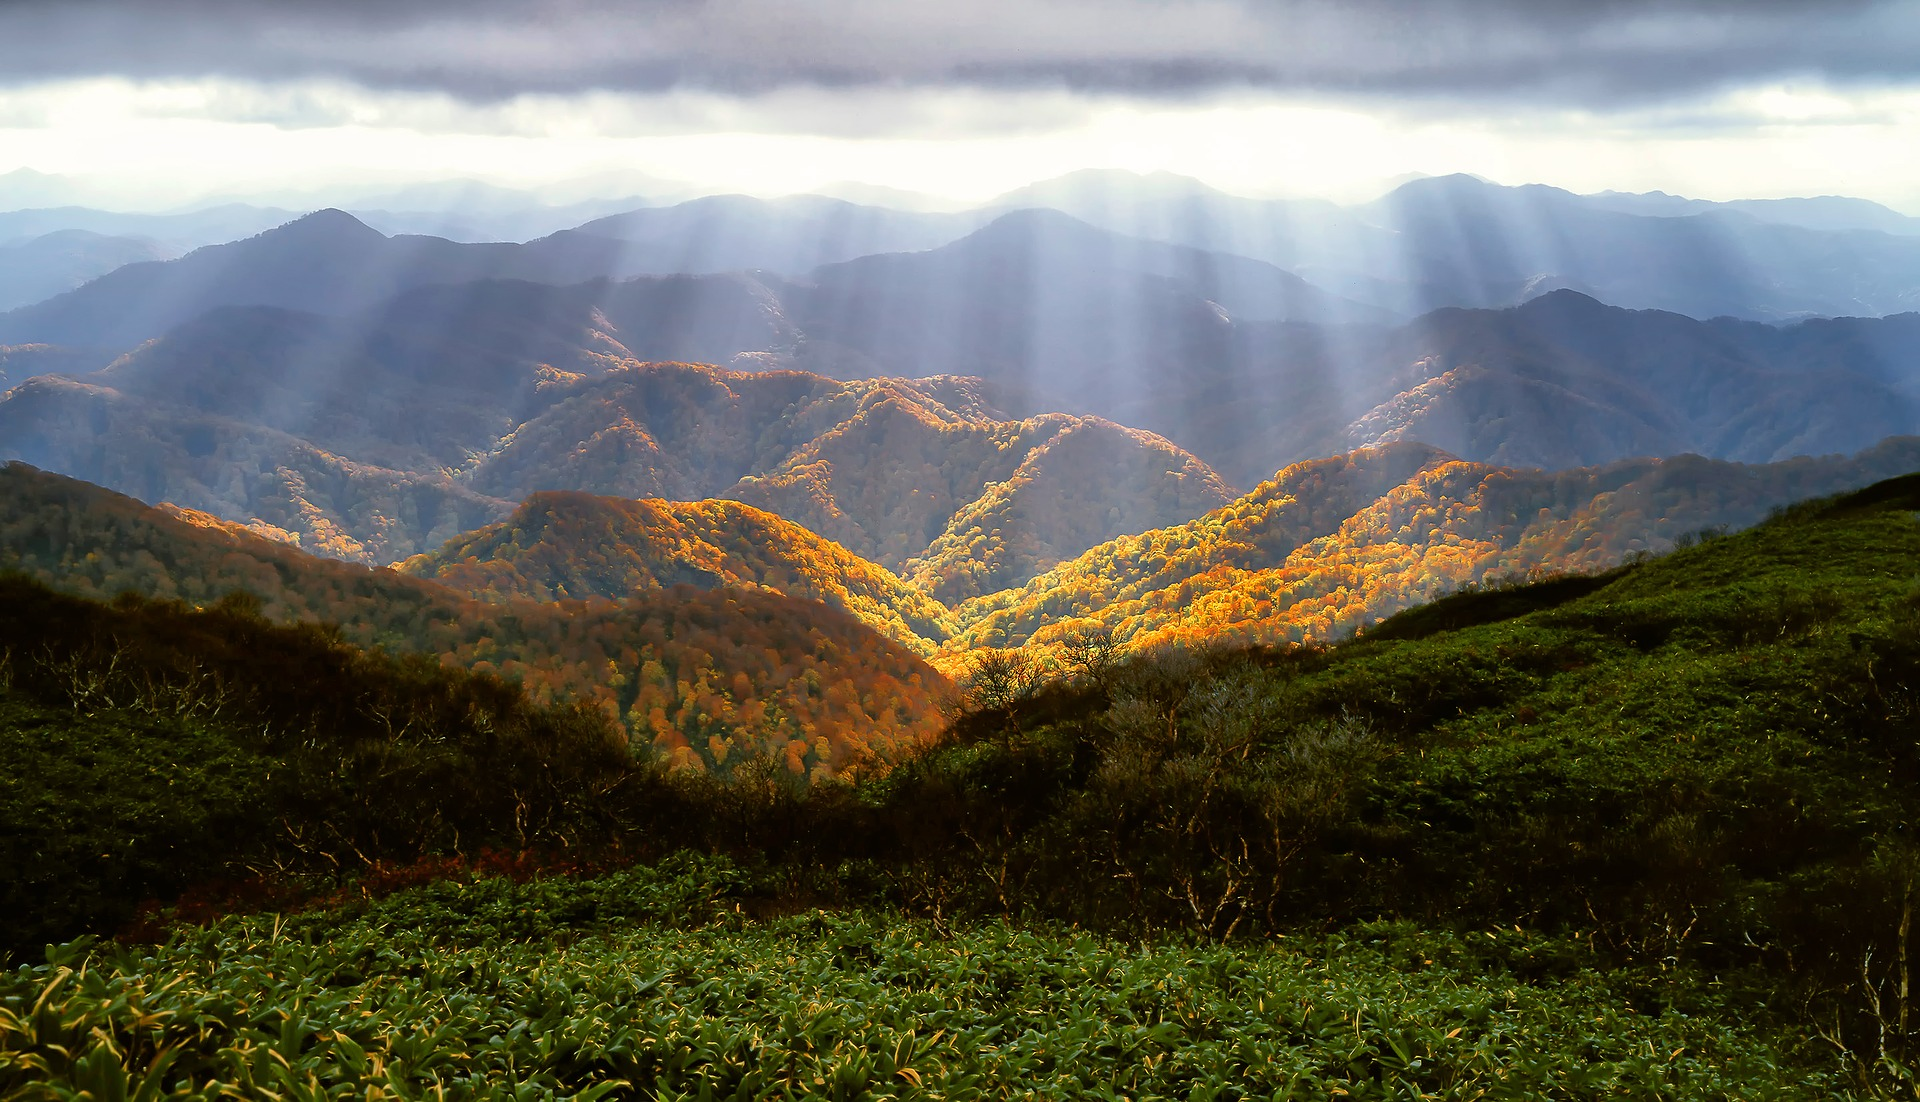 Sun breaking through the clouds in the autumn mountians